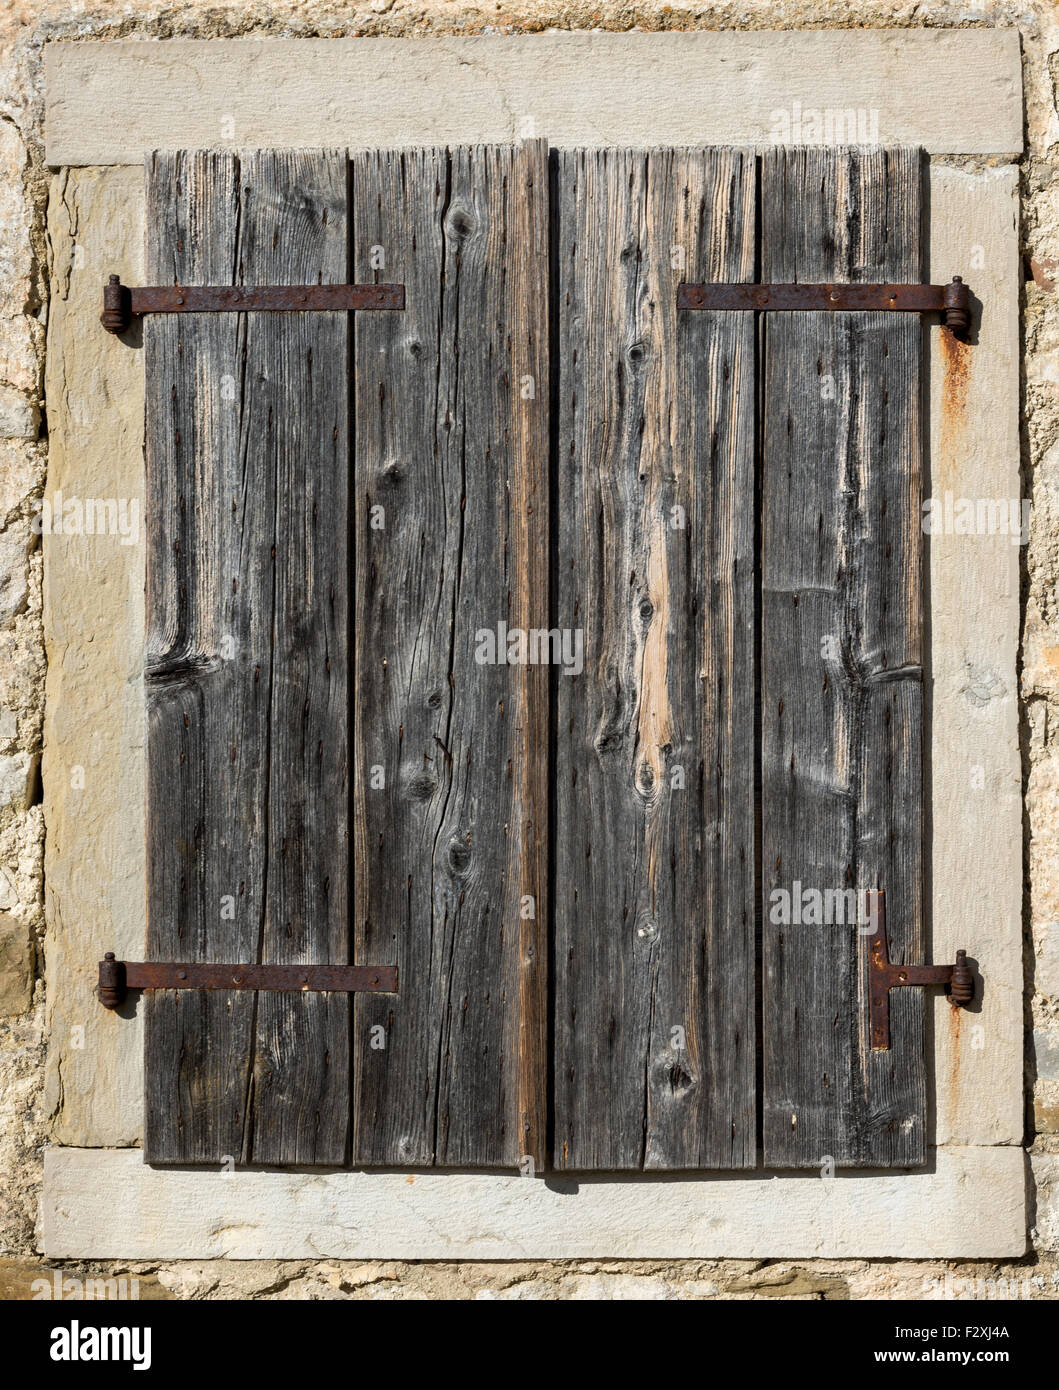 Wood Shutters Closed : Old window with closed gray wooden shutters stock photo